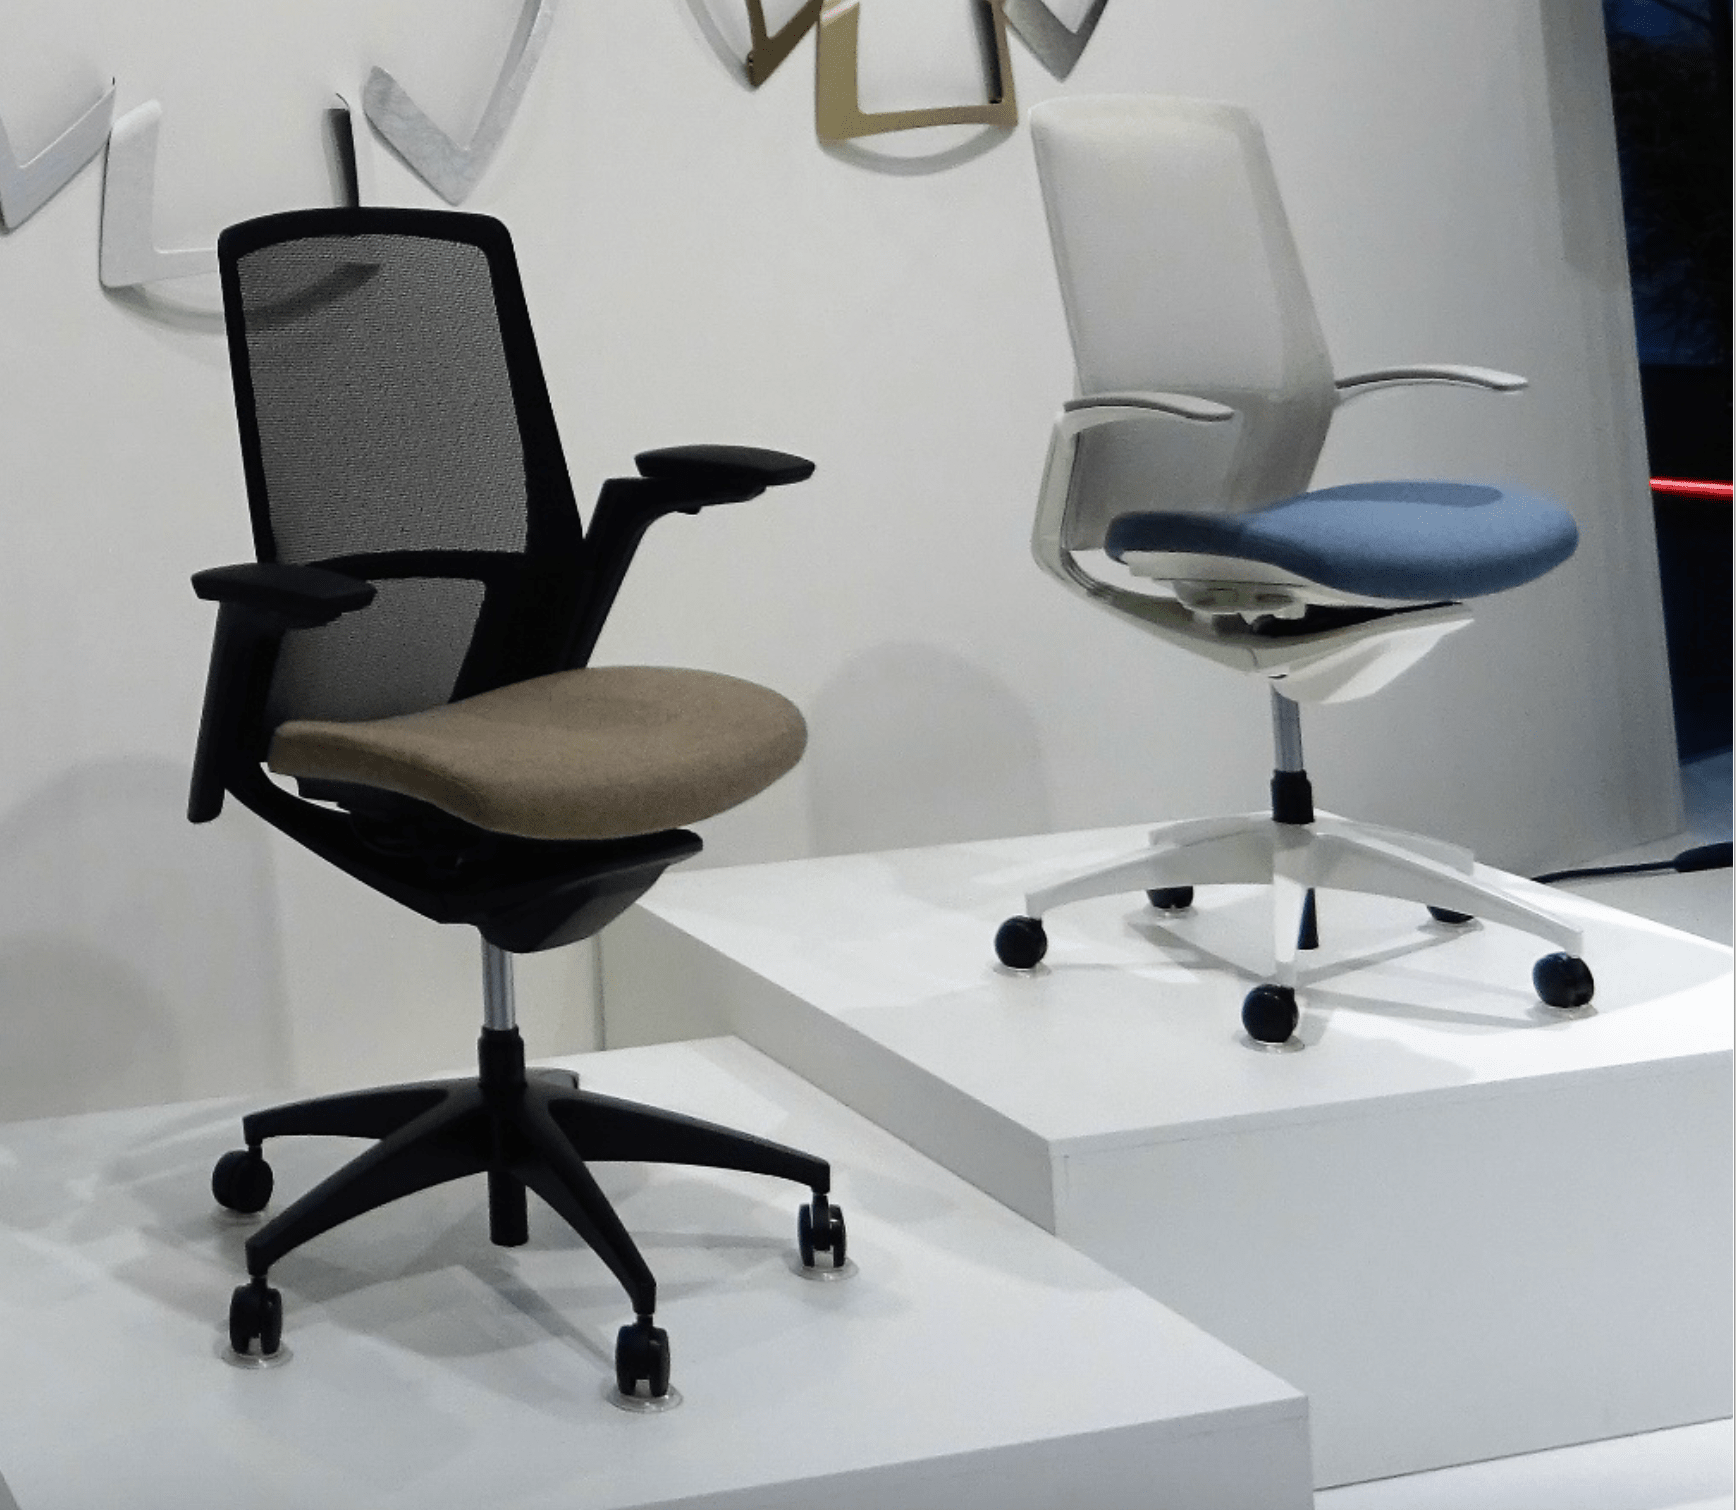 task-chairs-3